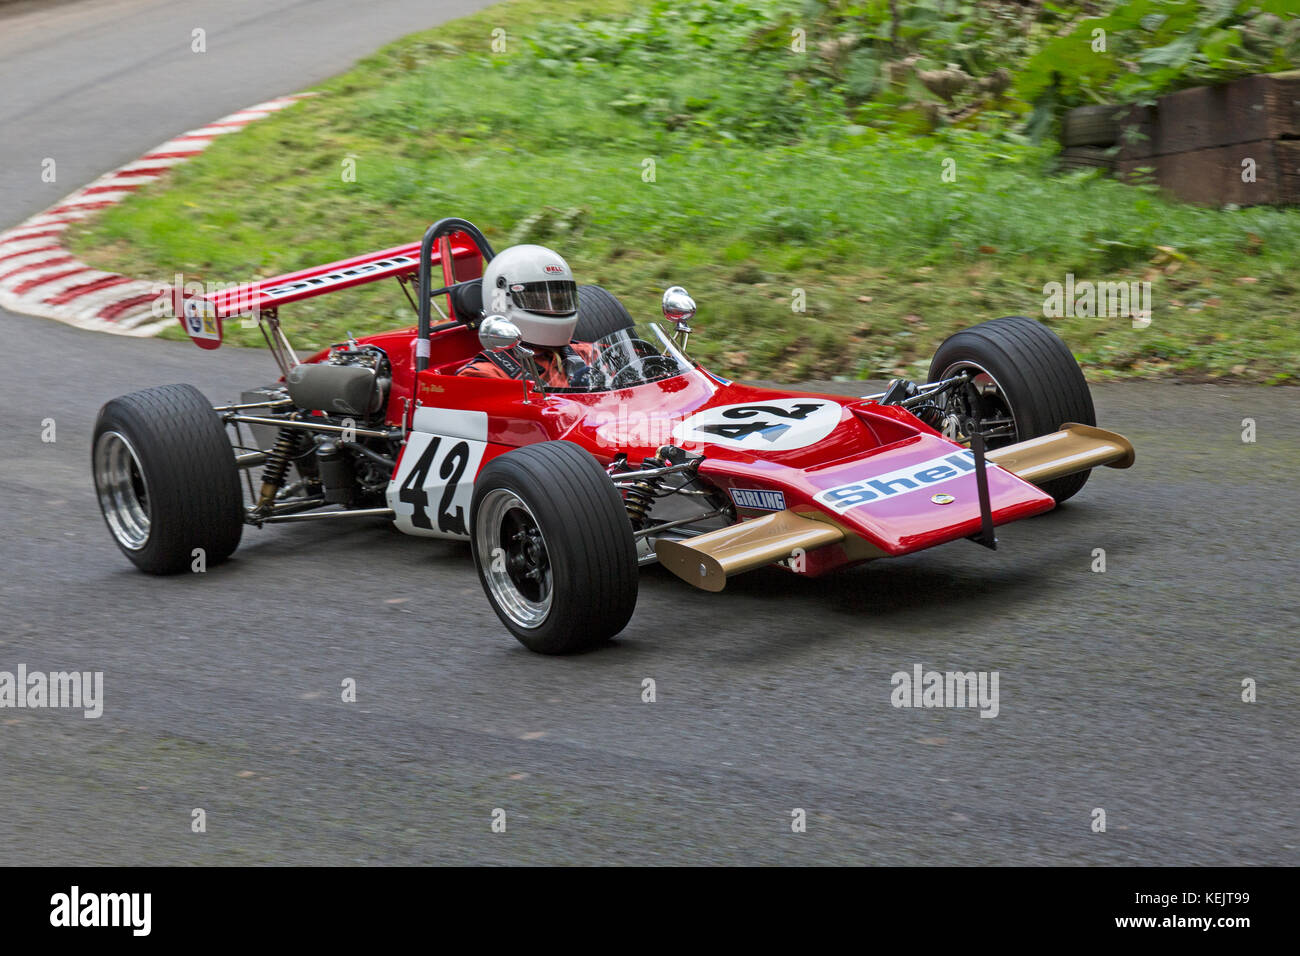 Lotus 69 F3 being driven by Tony Wallen at the Autumn Speed Finale at Shelsley Walsh Hill Climb, Worcestershire, - Stock Image